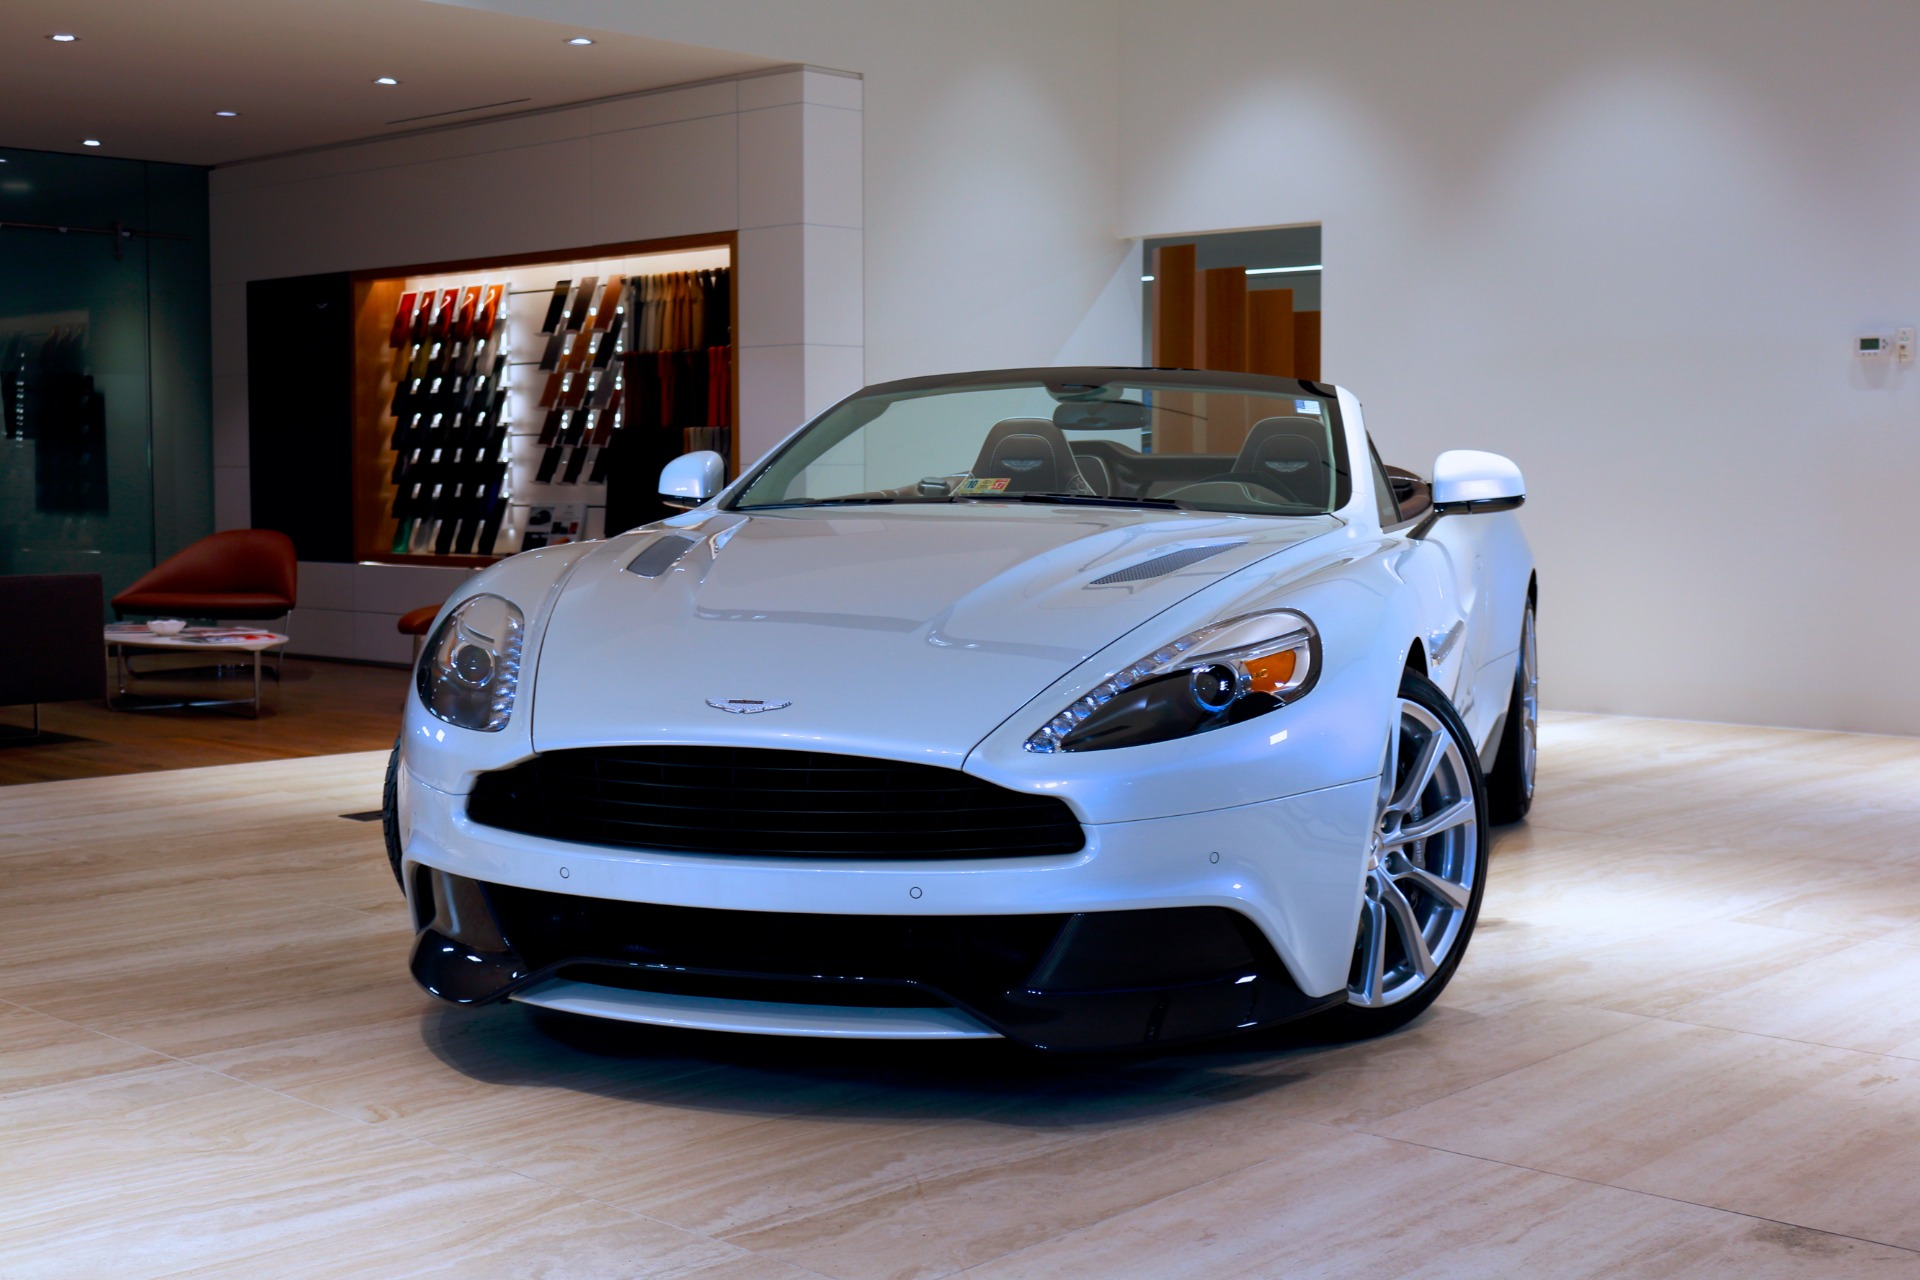 2016 aston martin vanquish volante stock # 6k02880 for sale near